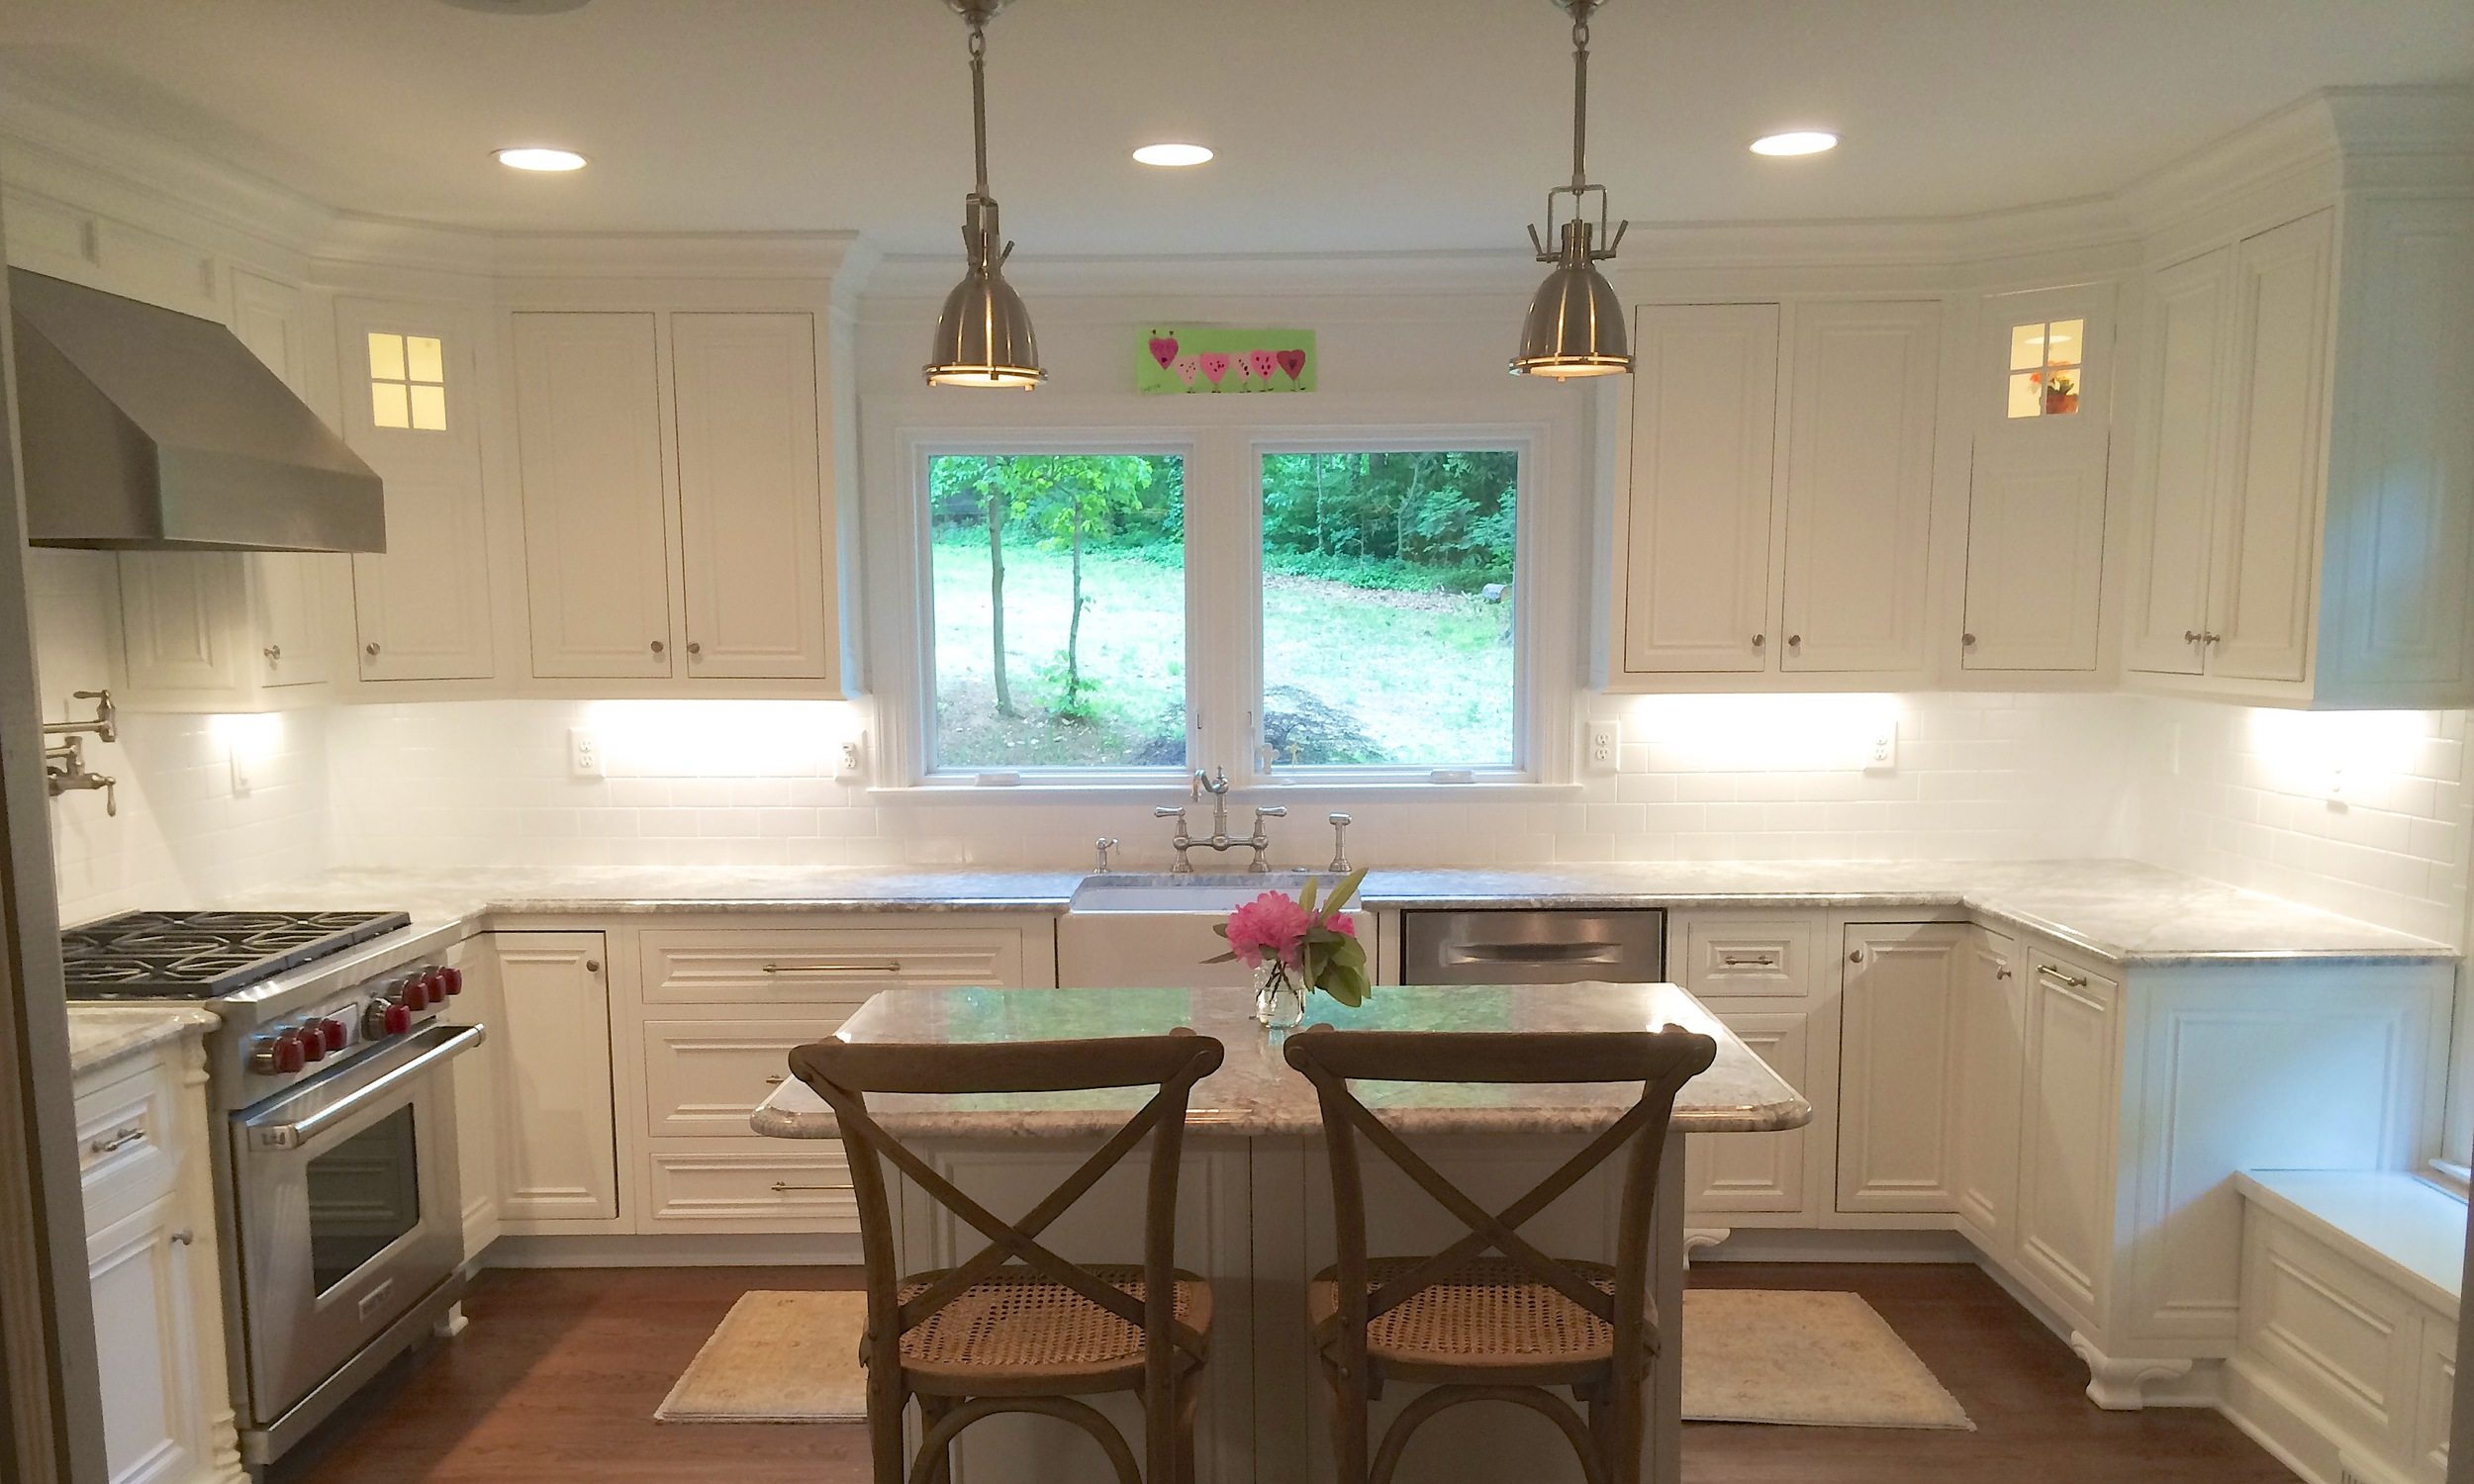 Best Kitchen Gallery: Kitchen Cabi S Refinishing Refacing Redooring Custom of Redooring Kitchen Cabinets on cal-ite.com